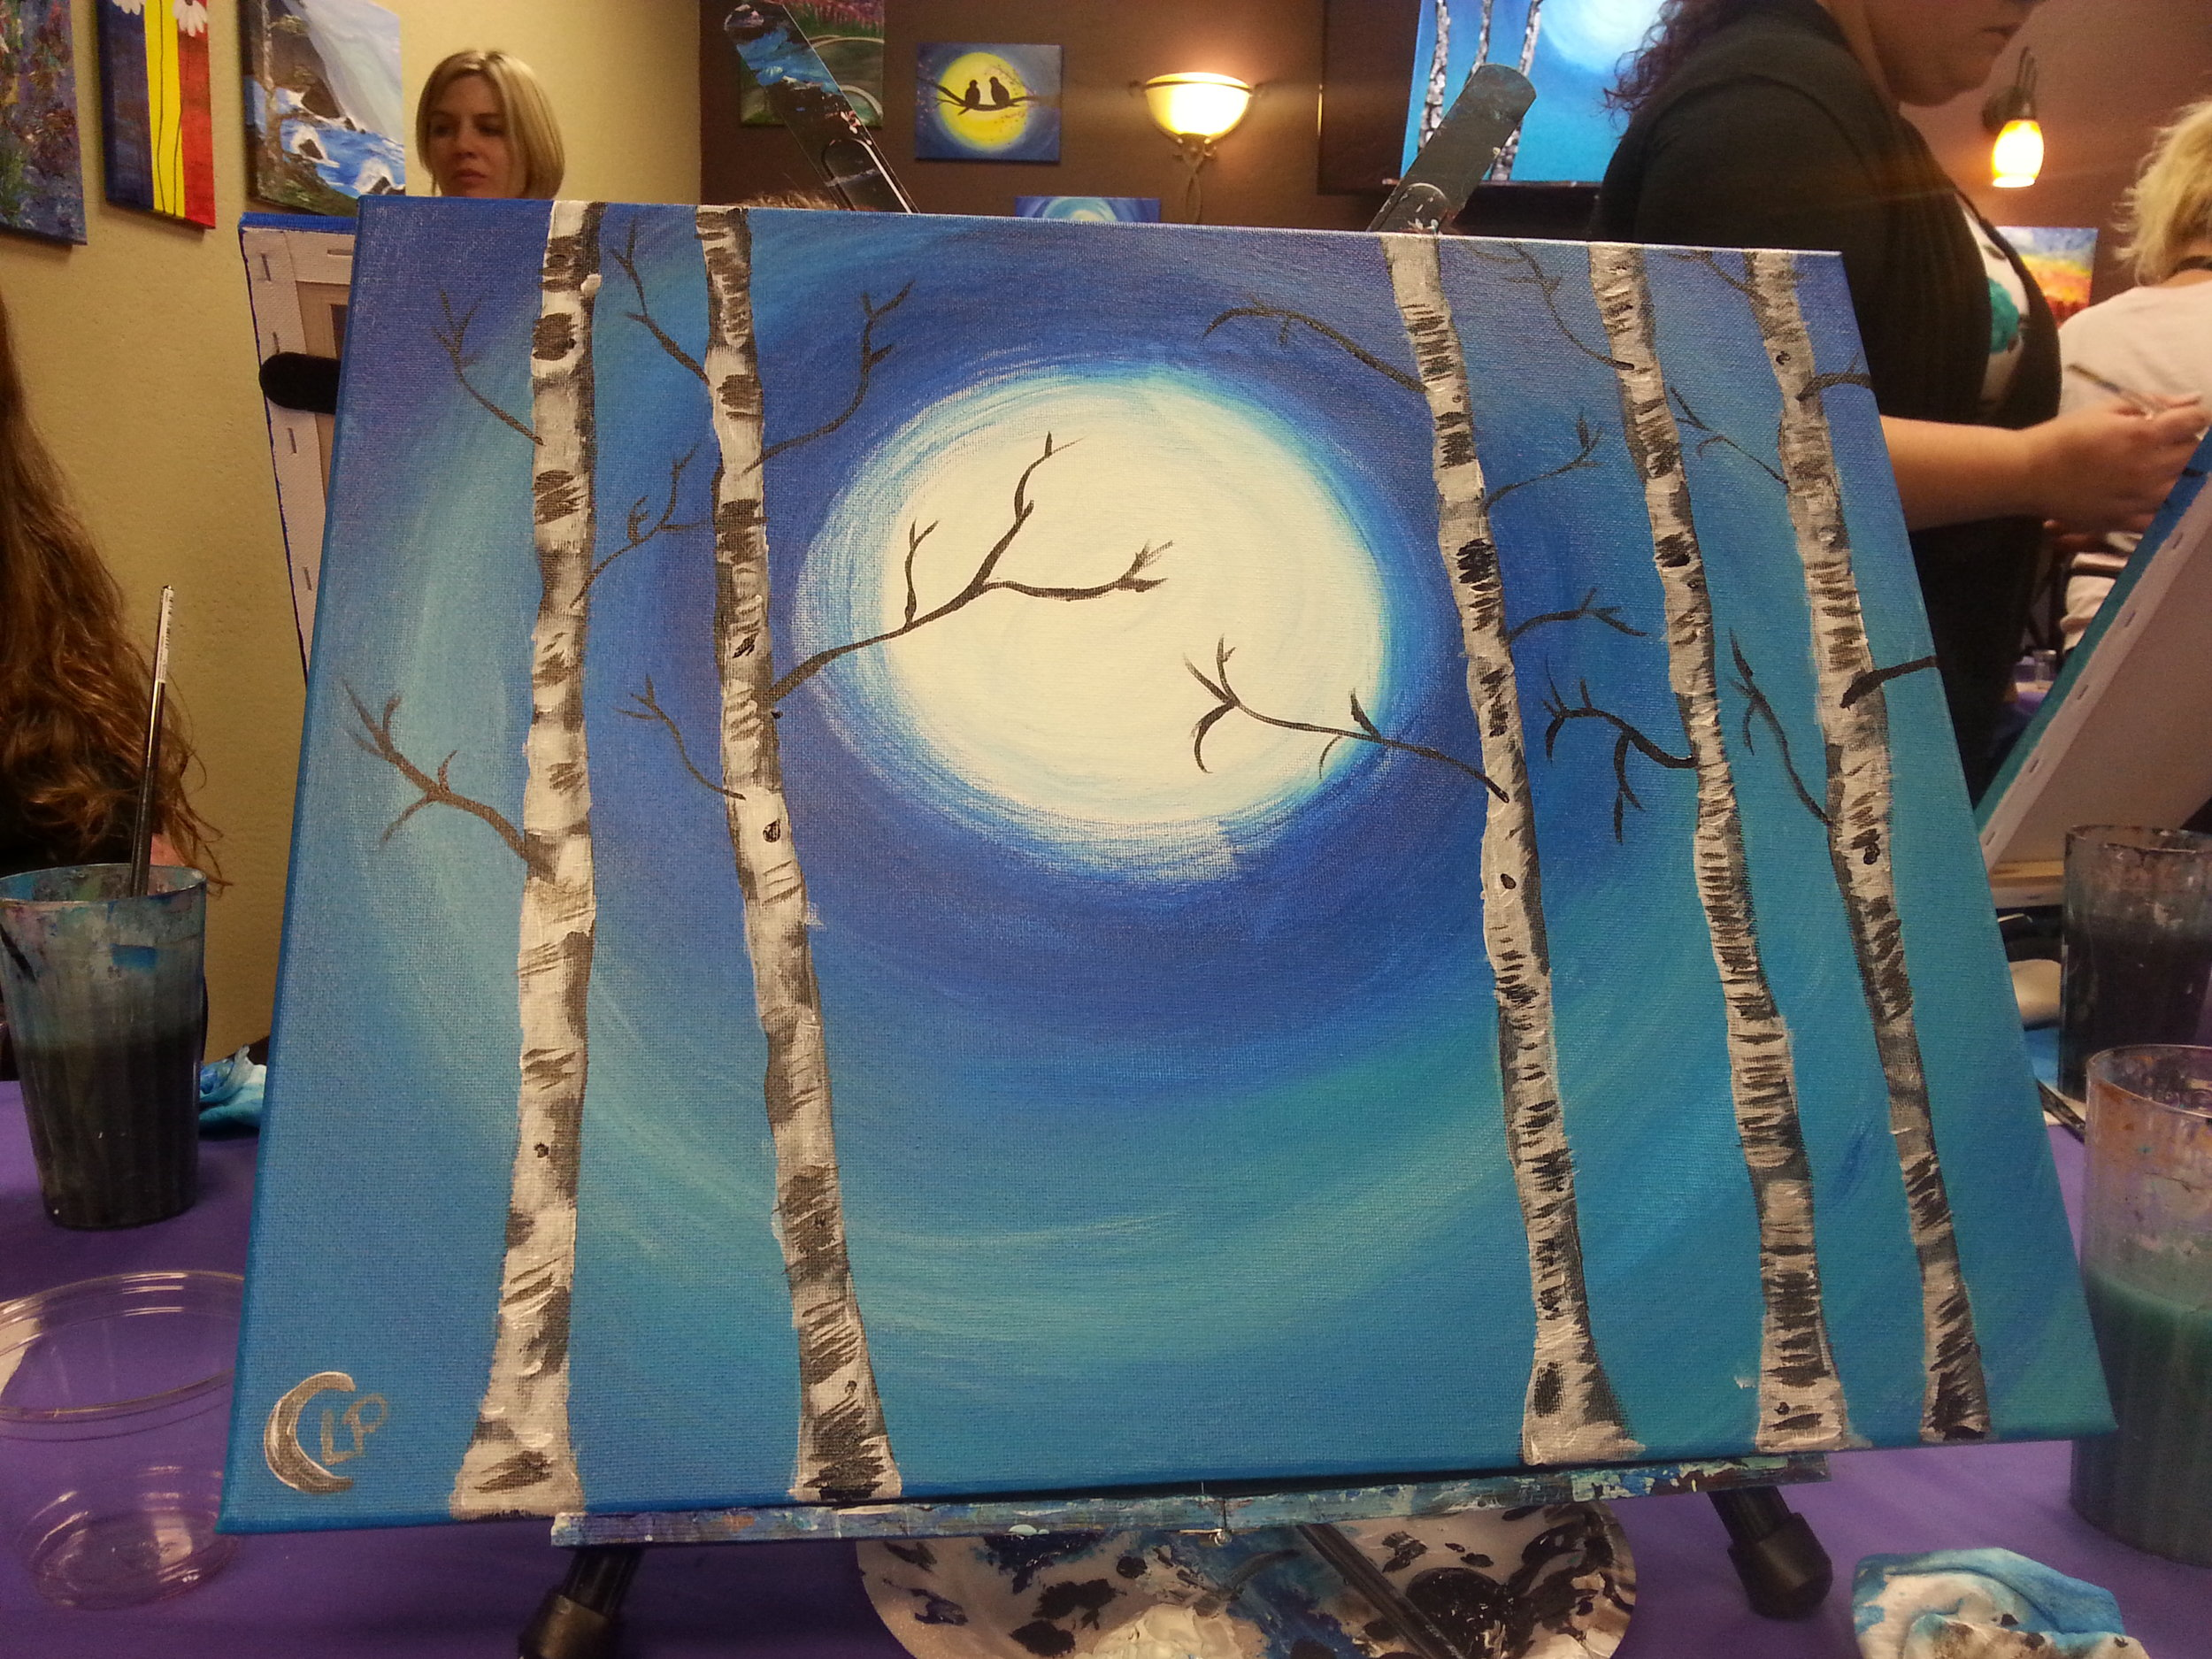 ART 4 JOY - Sip n' Paint - Central Point - What to do in Southern Oregon - Things to do - Events - Girls Night - Family - Kids (8).jpg